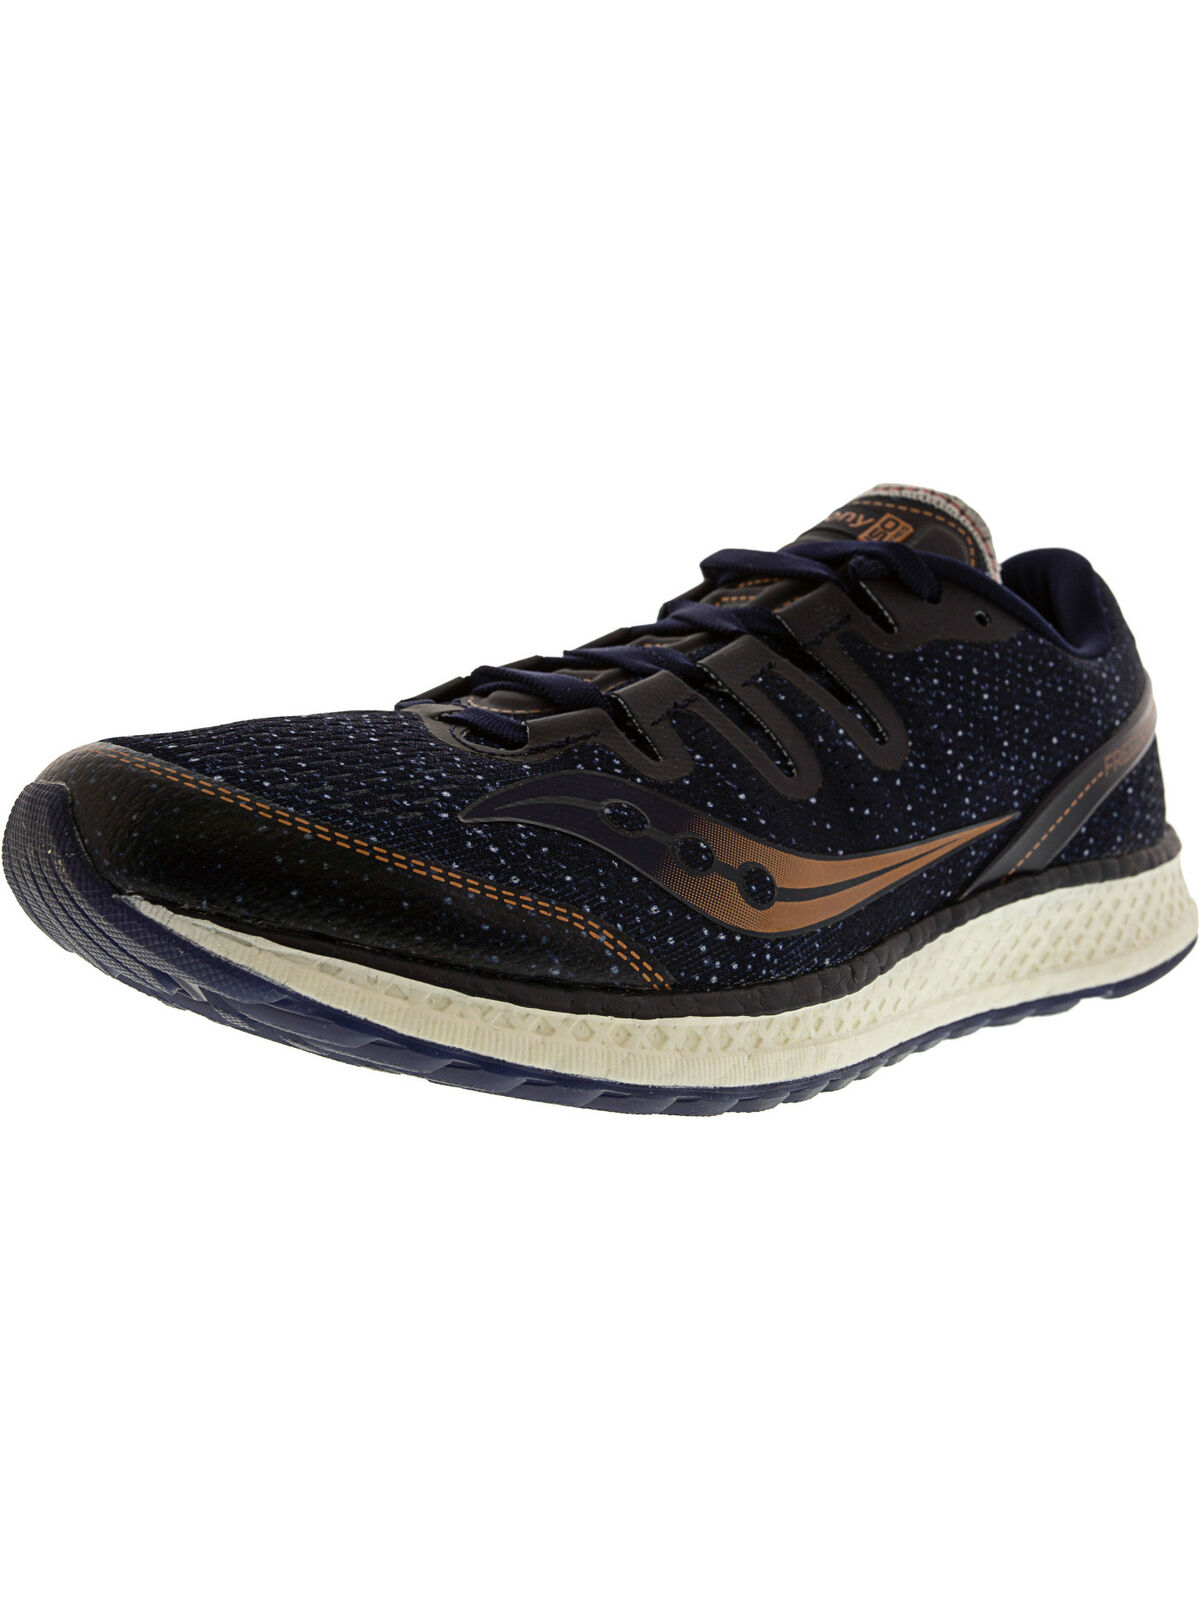 Homme Saucony Freedom Iso Ankle-high Mesh Chaussure De Course